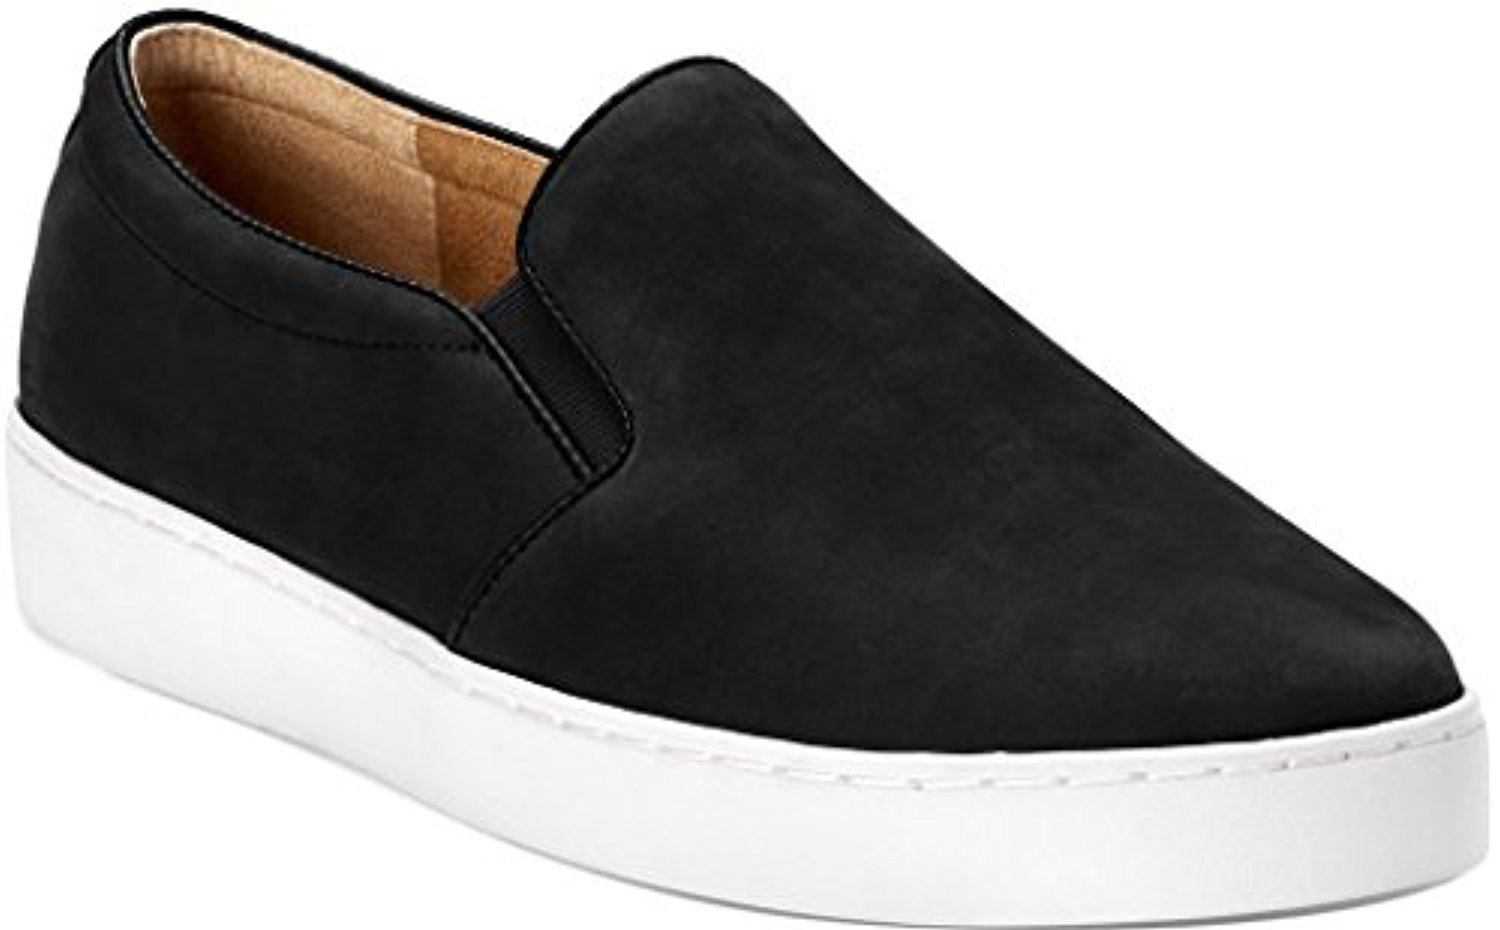 Vionic Women's Midi Slip-On Sneaker Black 9 / M & Travel Sunscreen Spray Bundle